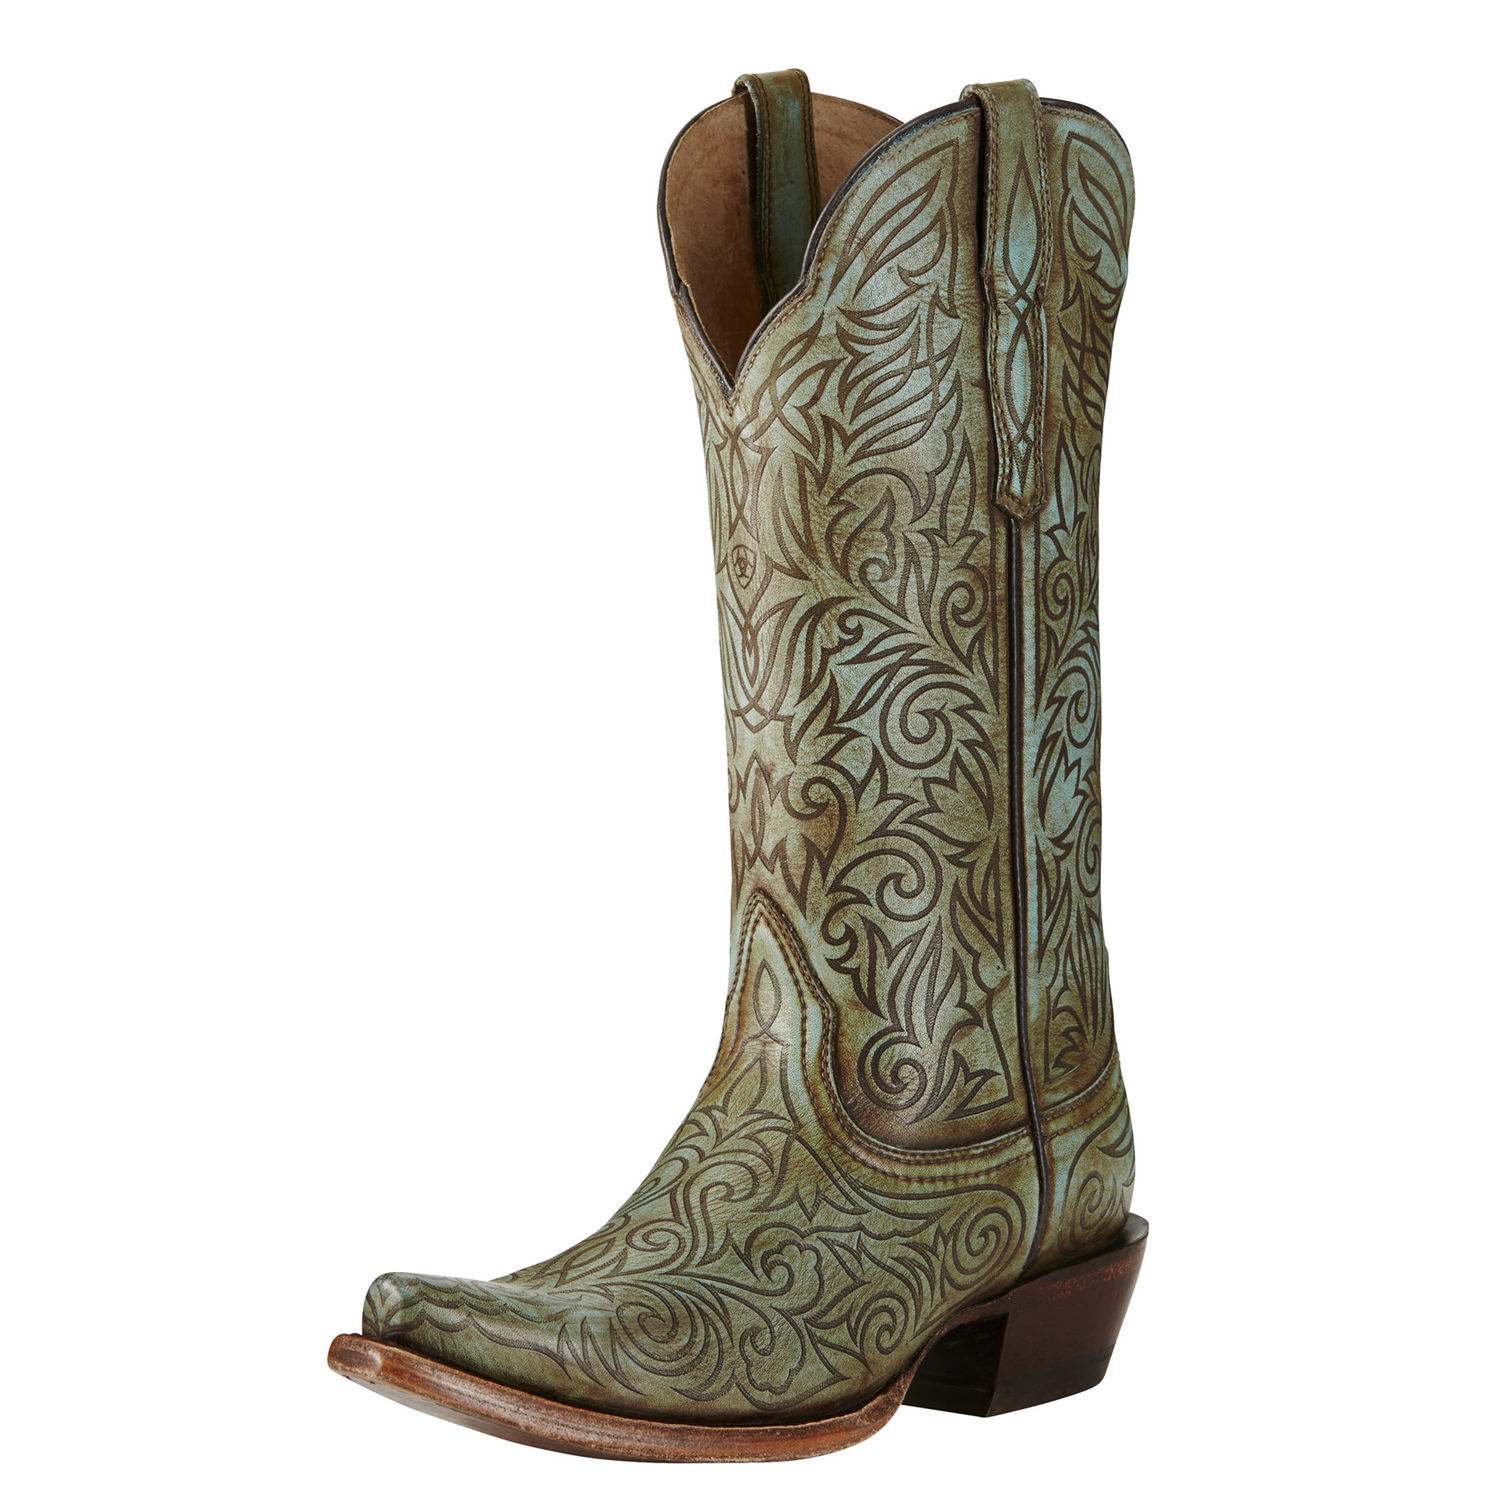 Ariat Women's Turquoise Sterling Boot Snip Toe - 10019964